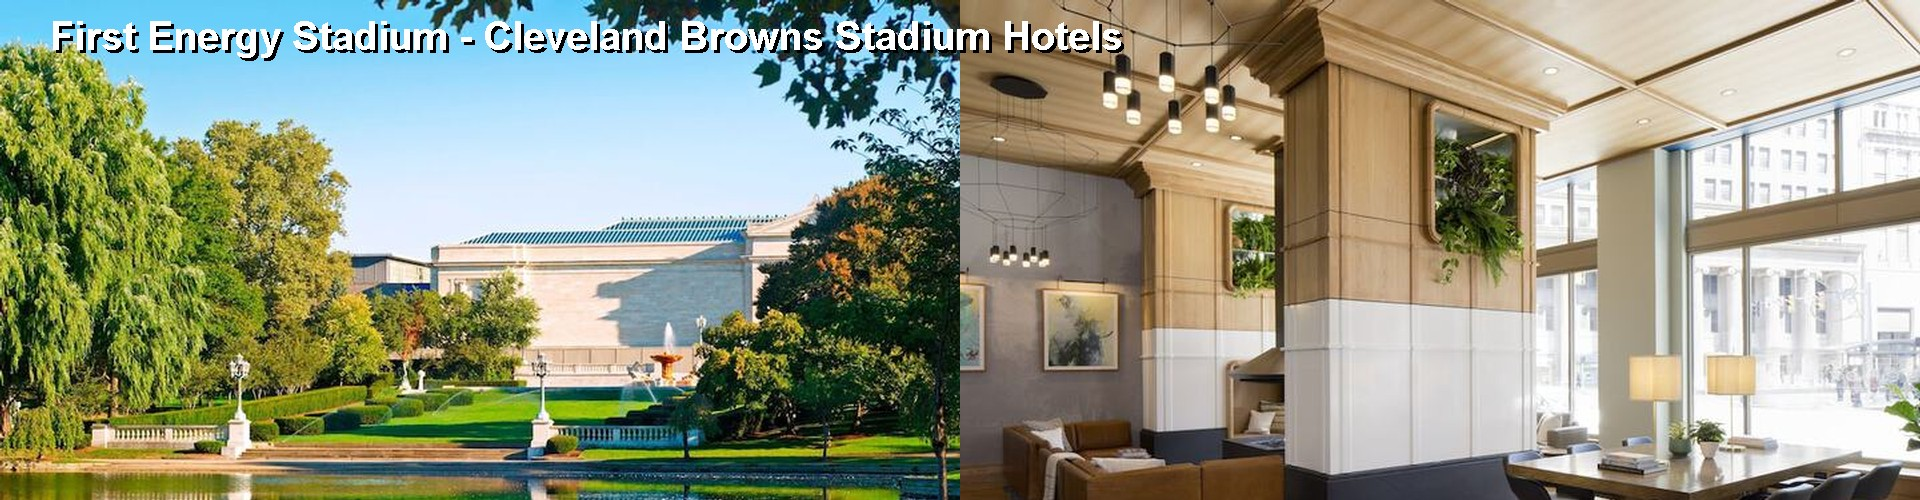 Hotels Near Cleveland Browns Stadium Cleveland Browns in North